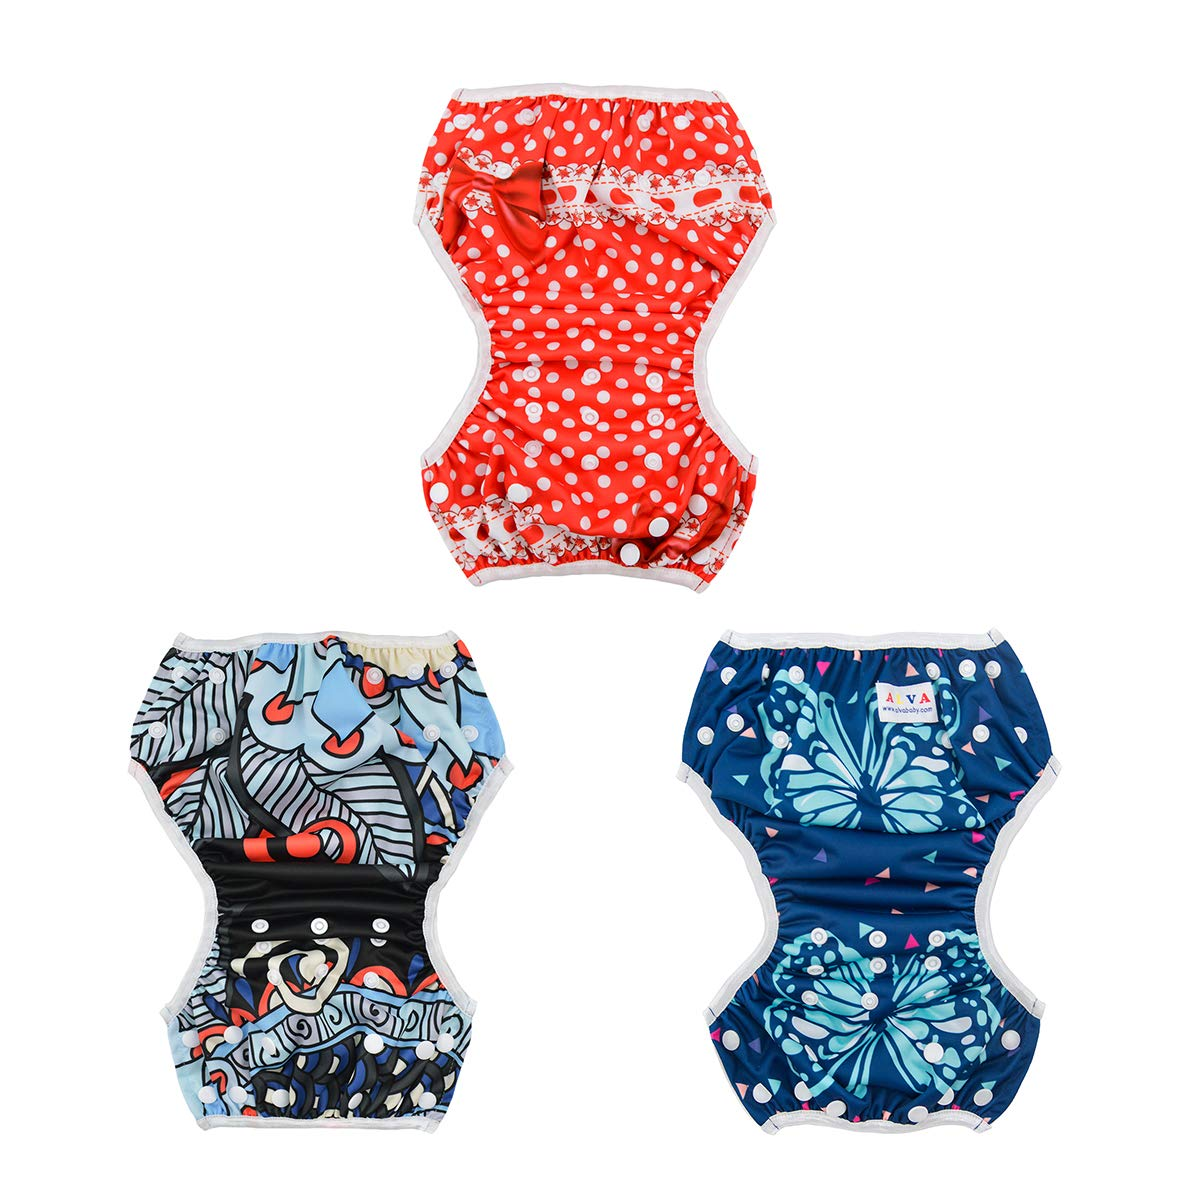 ALVABABY Swim Diapers 3pcs One Size Reuseable Washable /& Adjustable for Swimming Lesson /& Baby Shower Gifts 3SW11